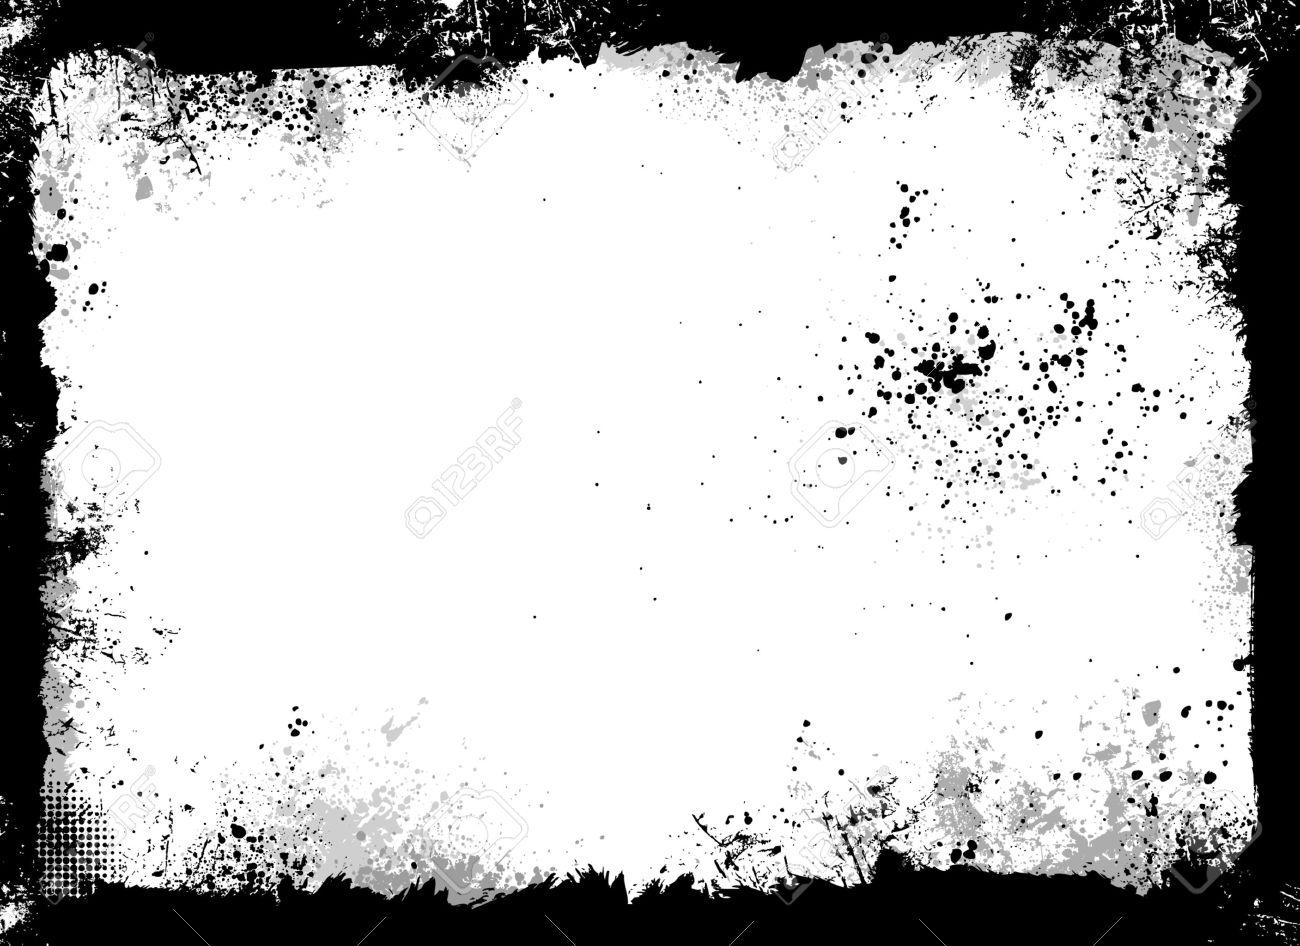 Black and gray grunge frame with paint splatter - 4366663